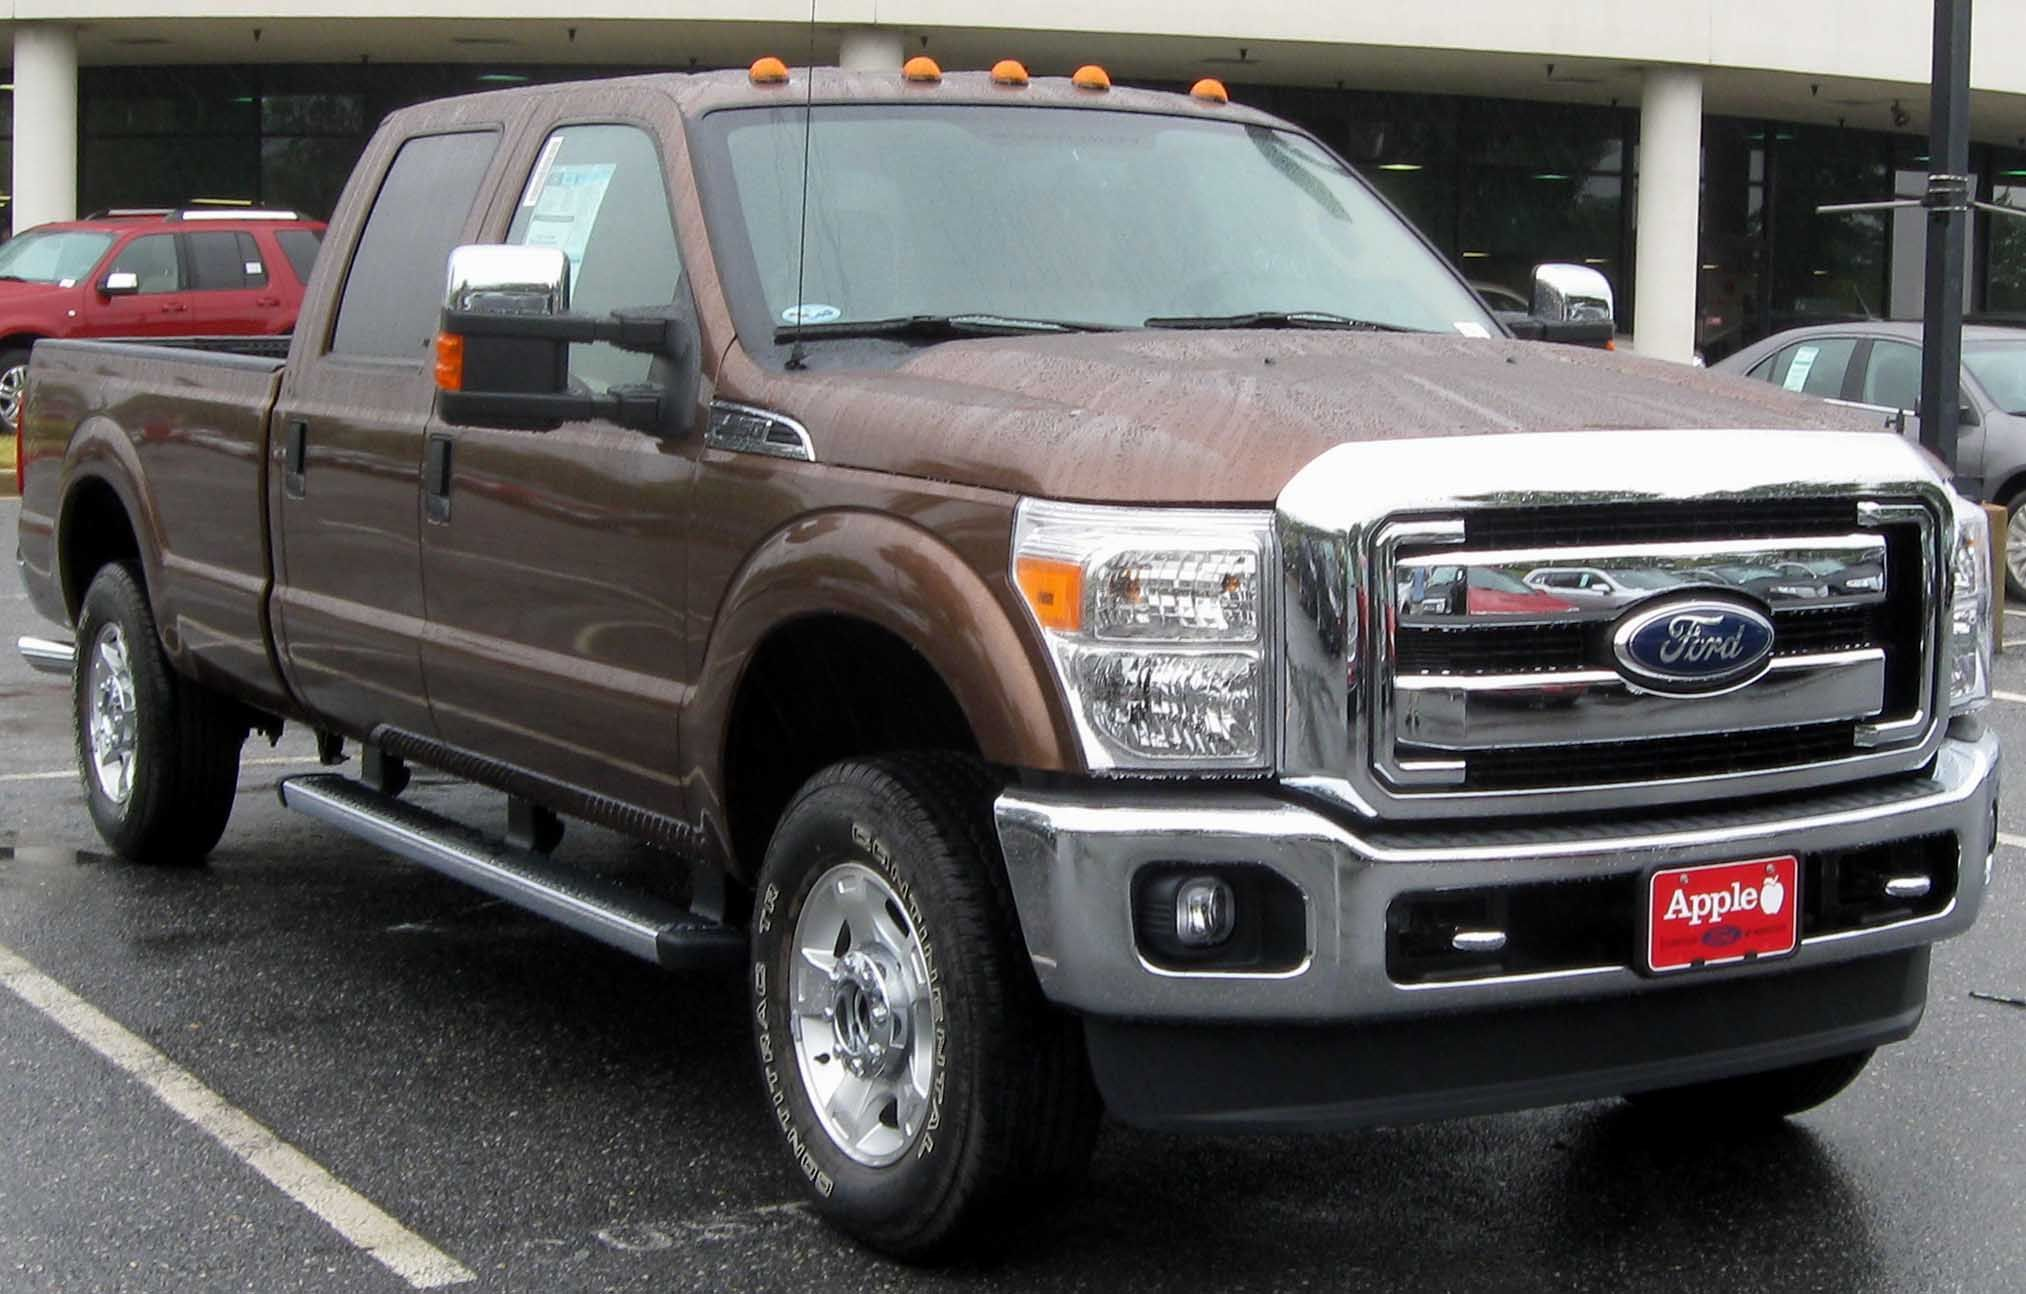 Ford F250 4x4 Crew Cab Long Bed Ford super duty, F250